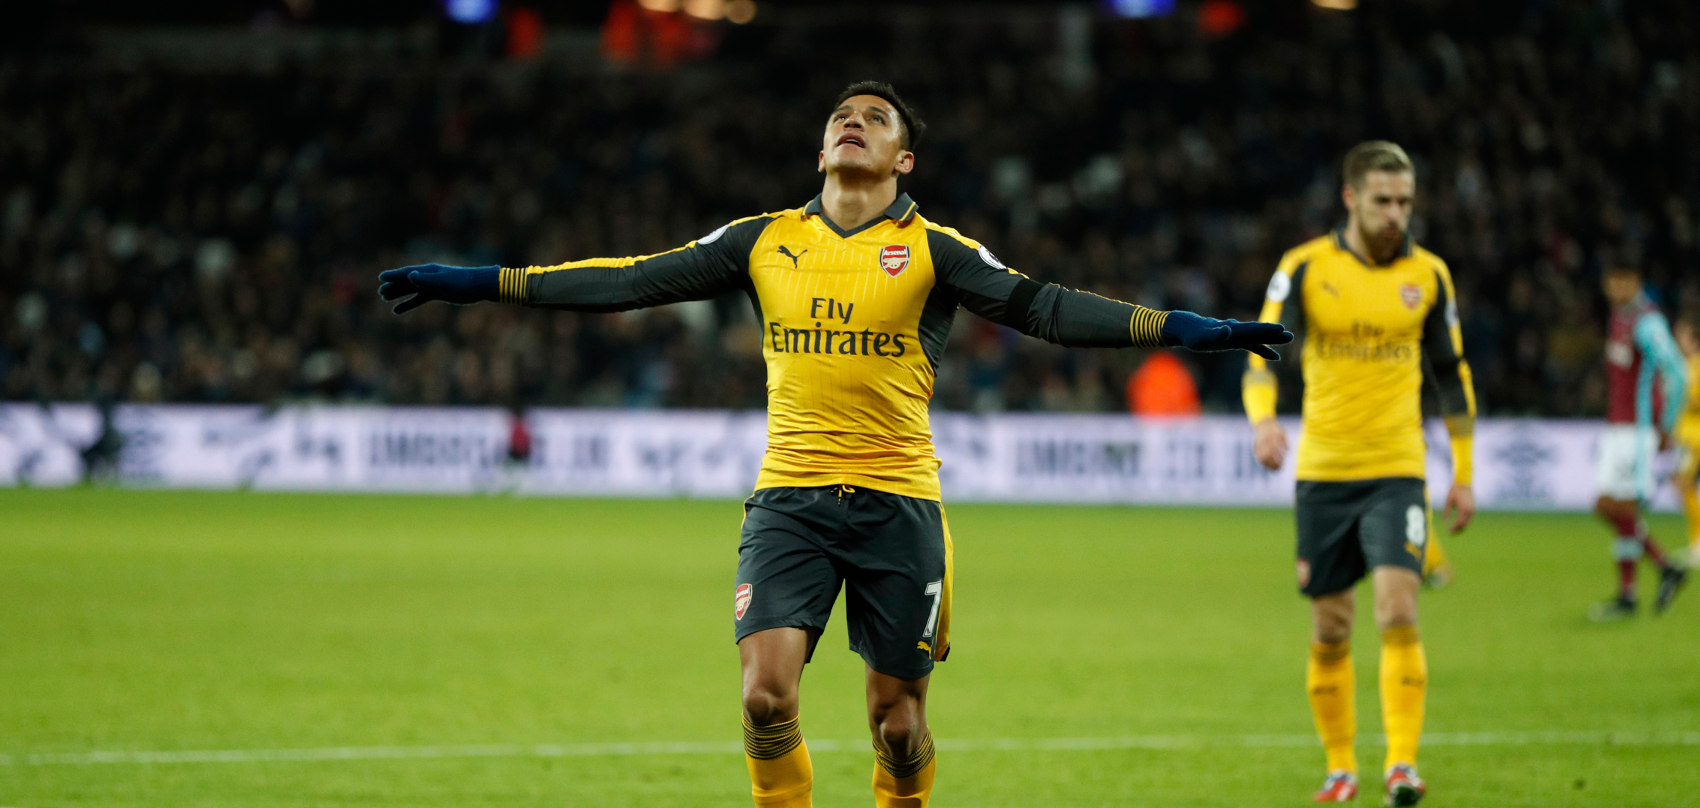 → Alexis Sánchez scored three goals against Stoke City and Sunderland in May 2017 en route to a memorable Double Gameweek 37 score of how many points?